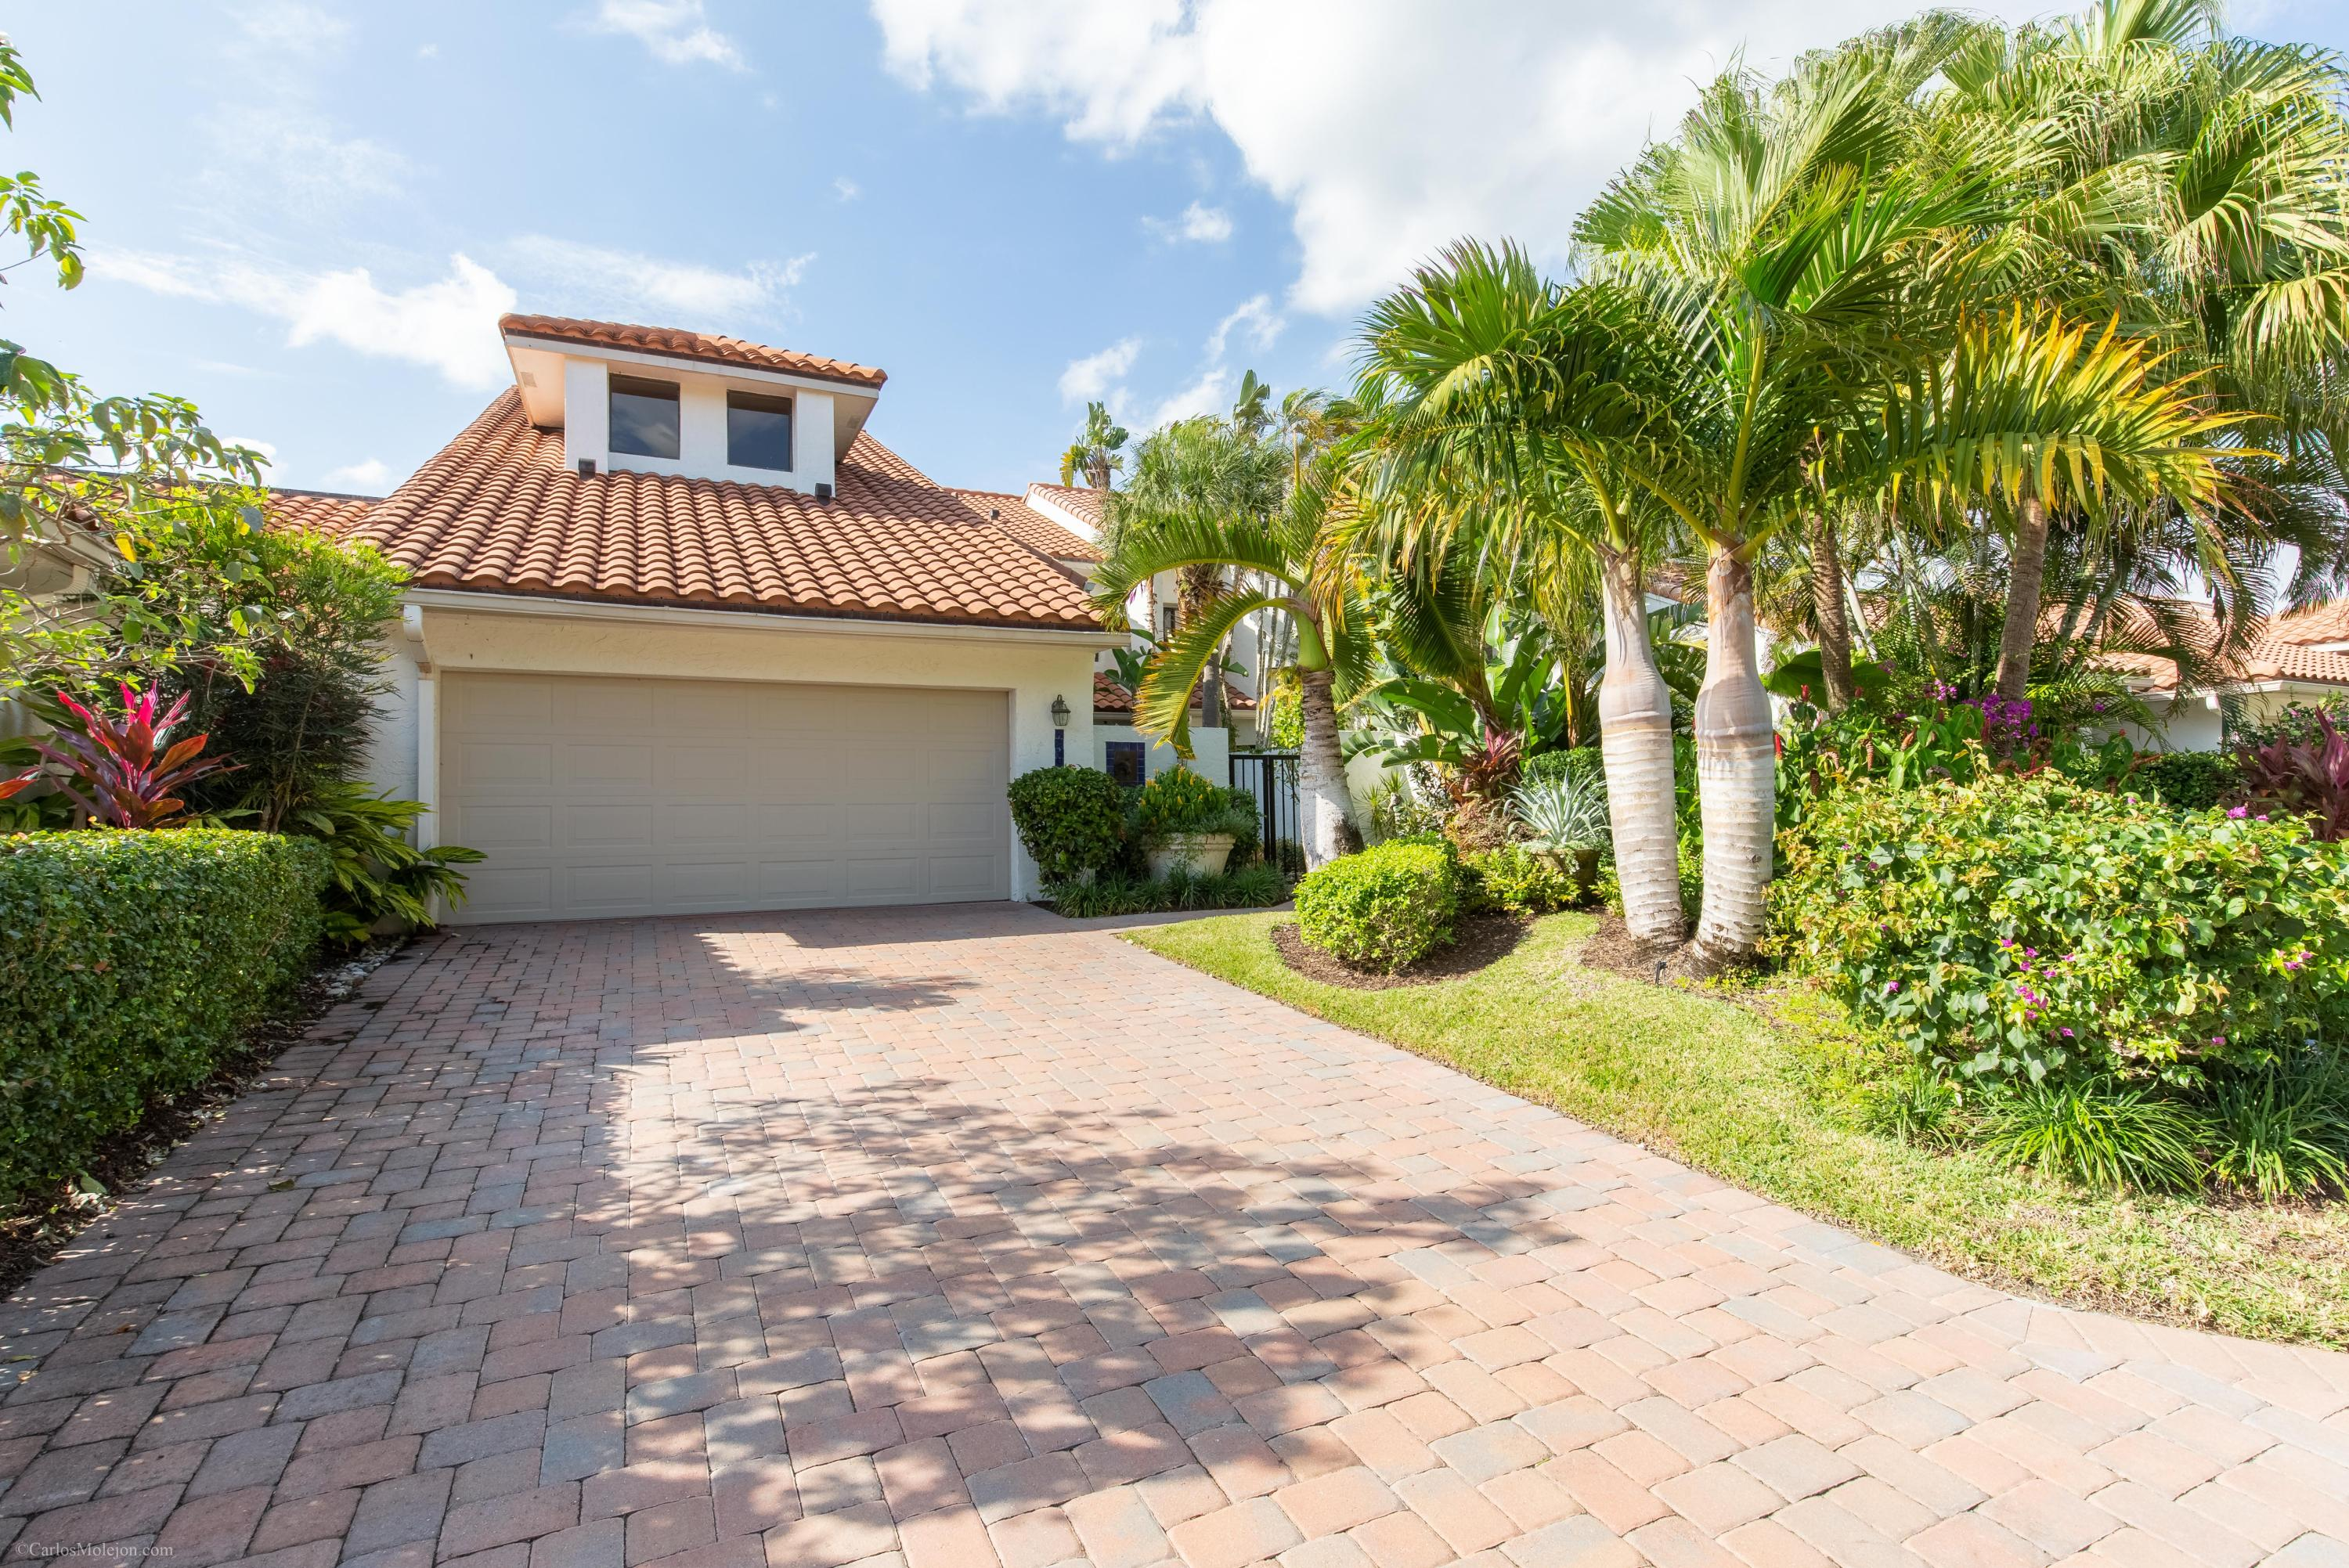 2507 Windsor Way Court, Wellington, Florida 33414, 4 Bedrooms Bedrooms, ,4.1 BathroomsBathrooms,Townhouse,For Sale,PALM BEACH POLO,Windsor Way,1,RX-10490006